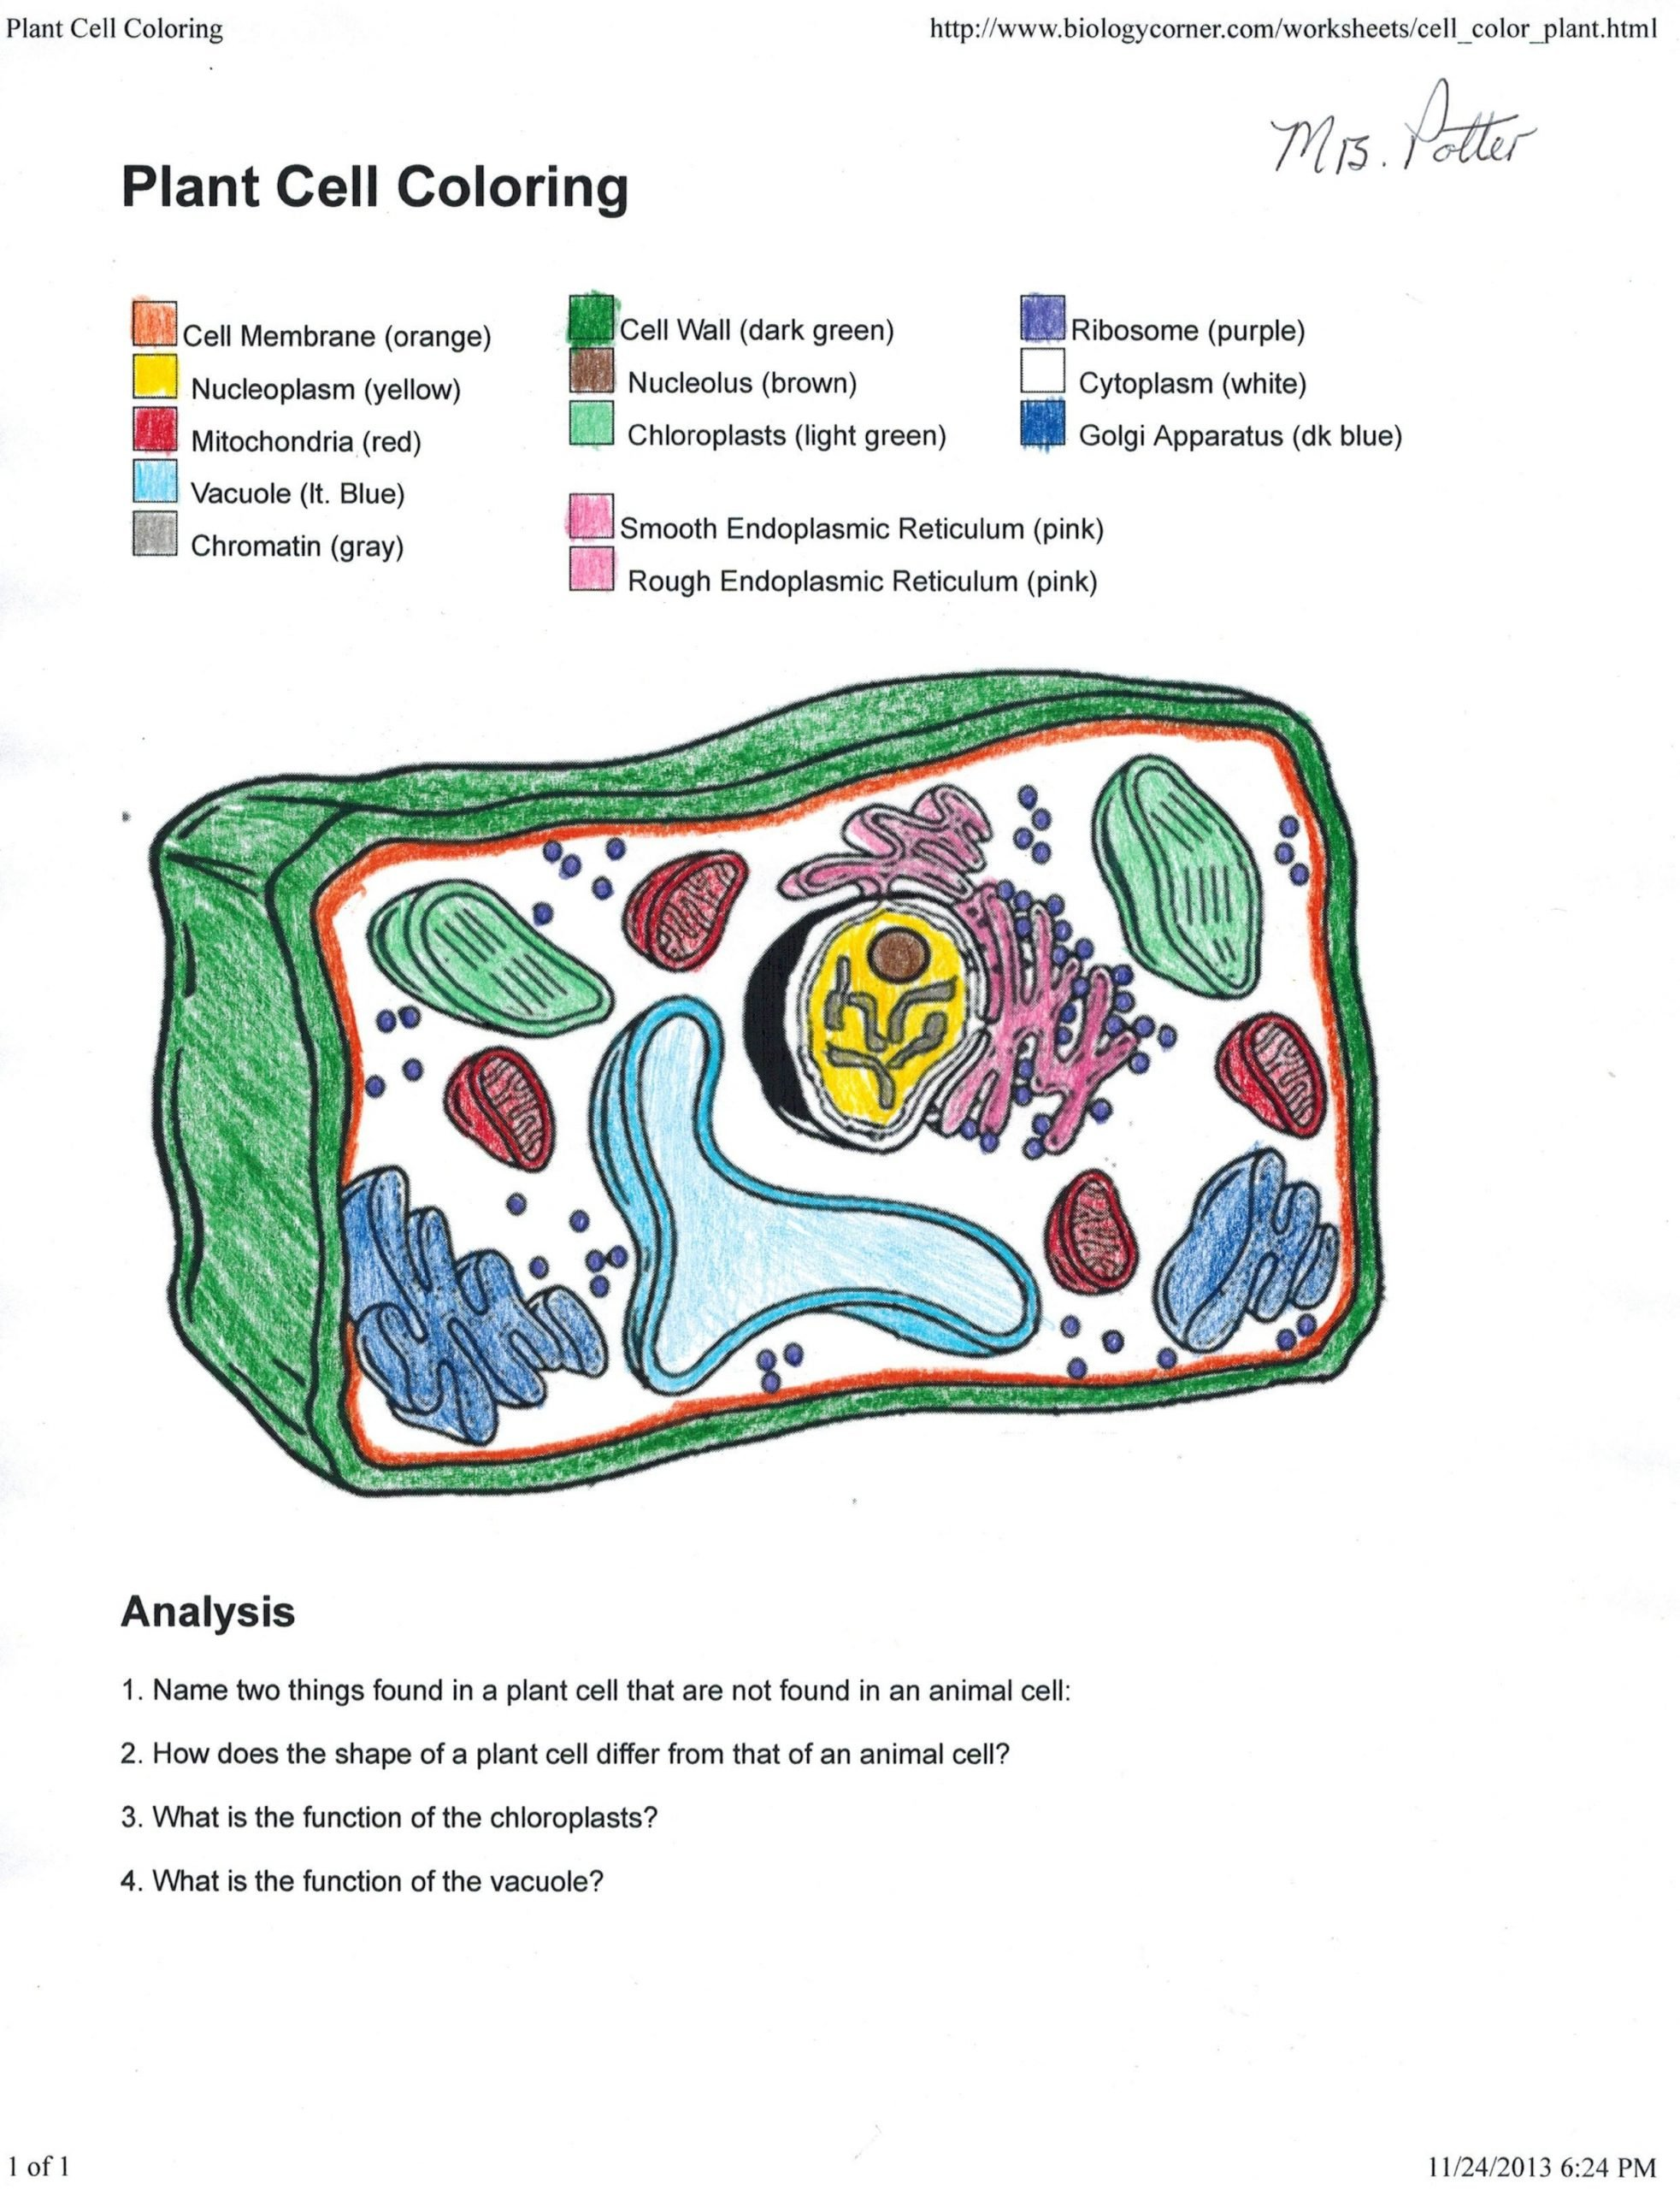 Cell Coloring Worksheets Trends for Plant Cell Coloring Answer Sheet